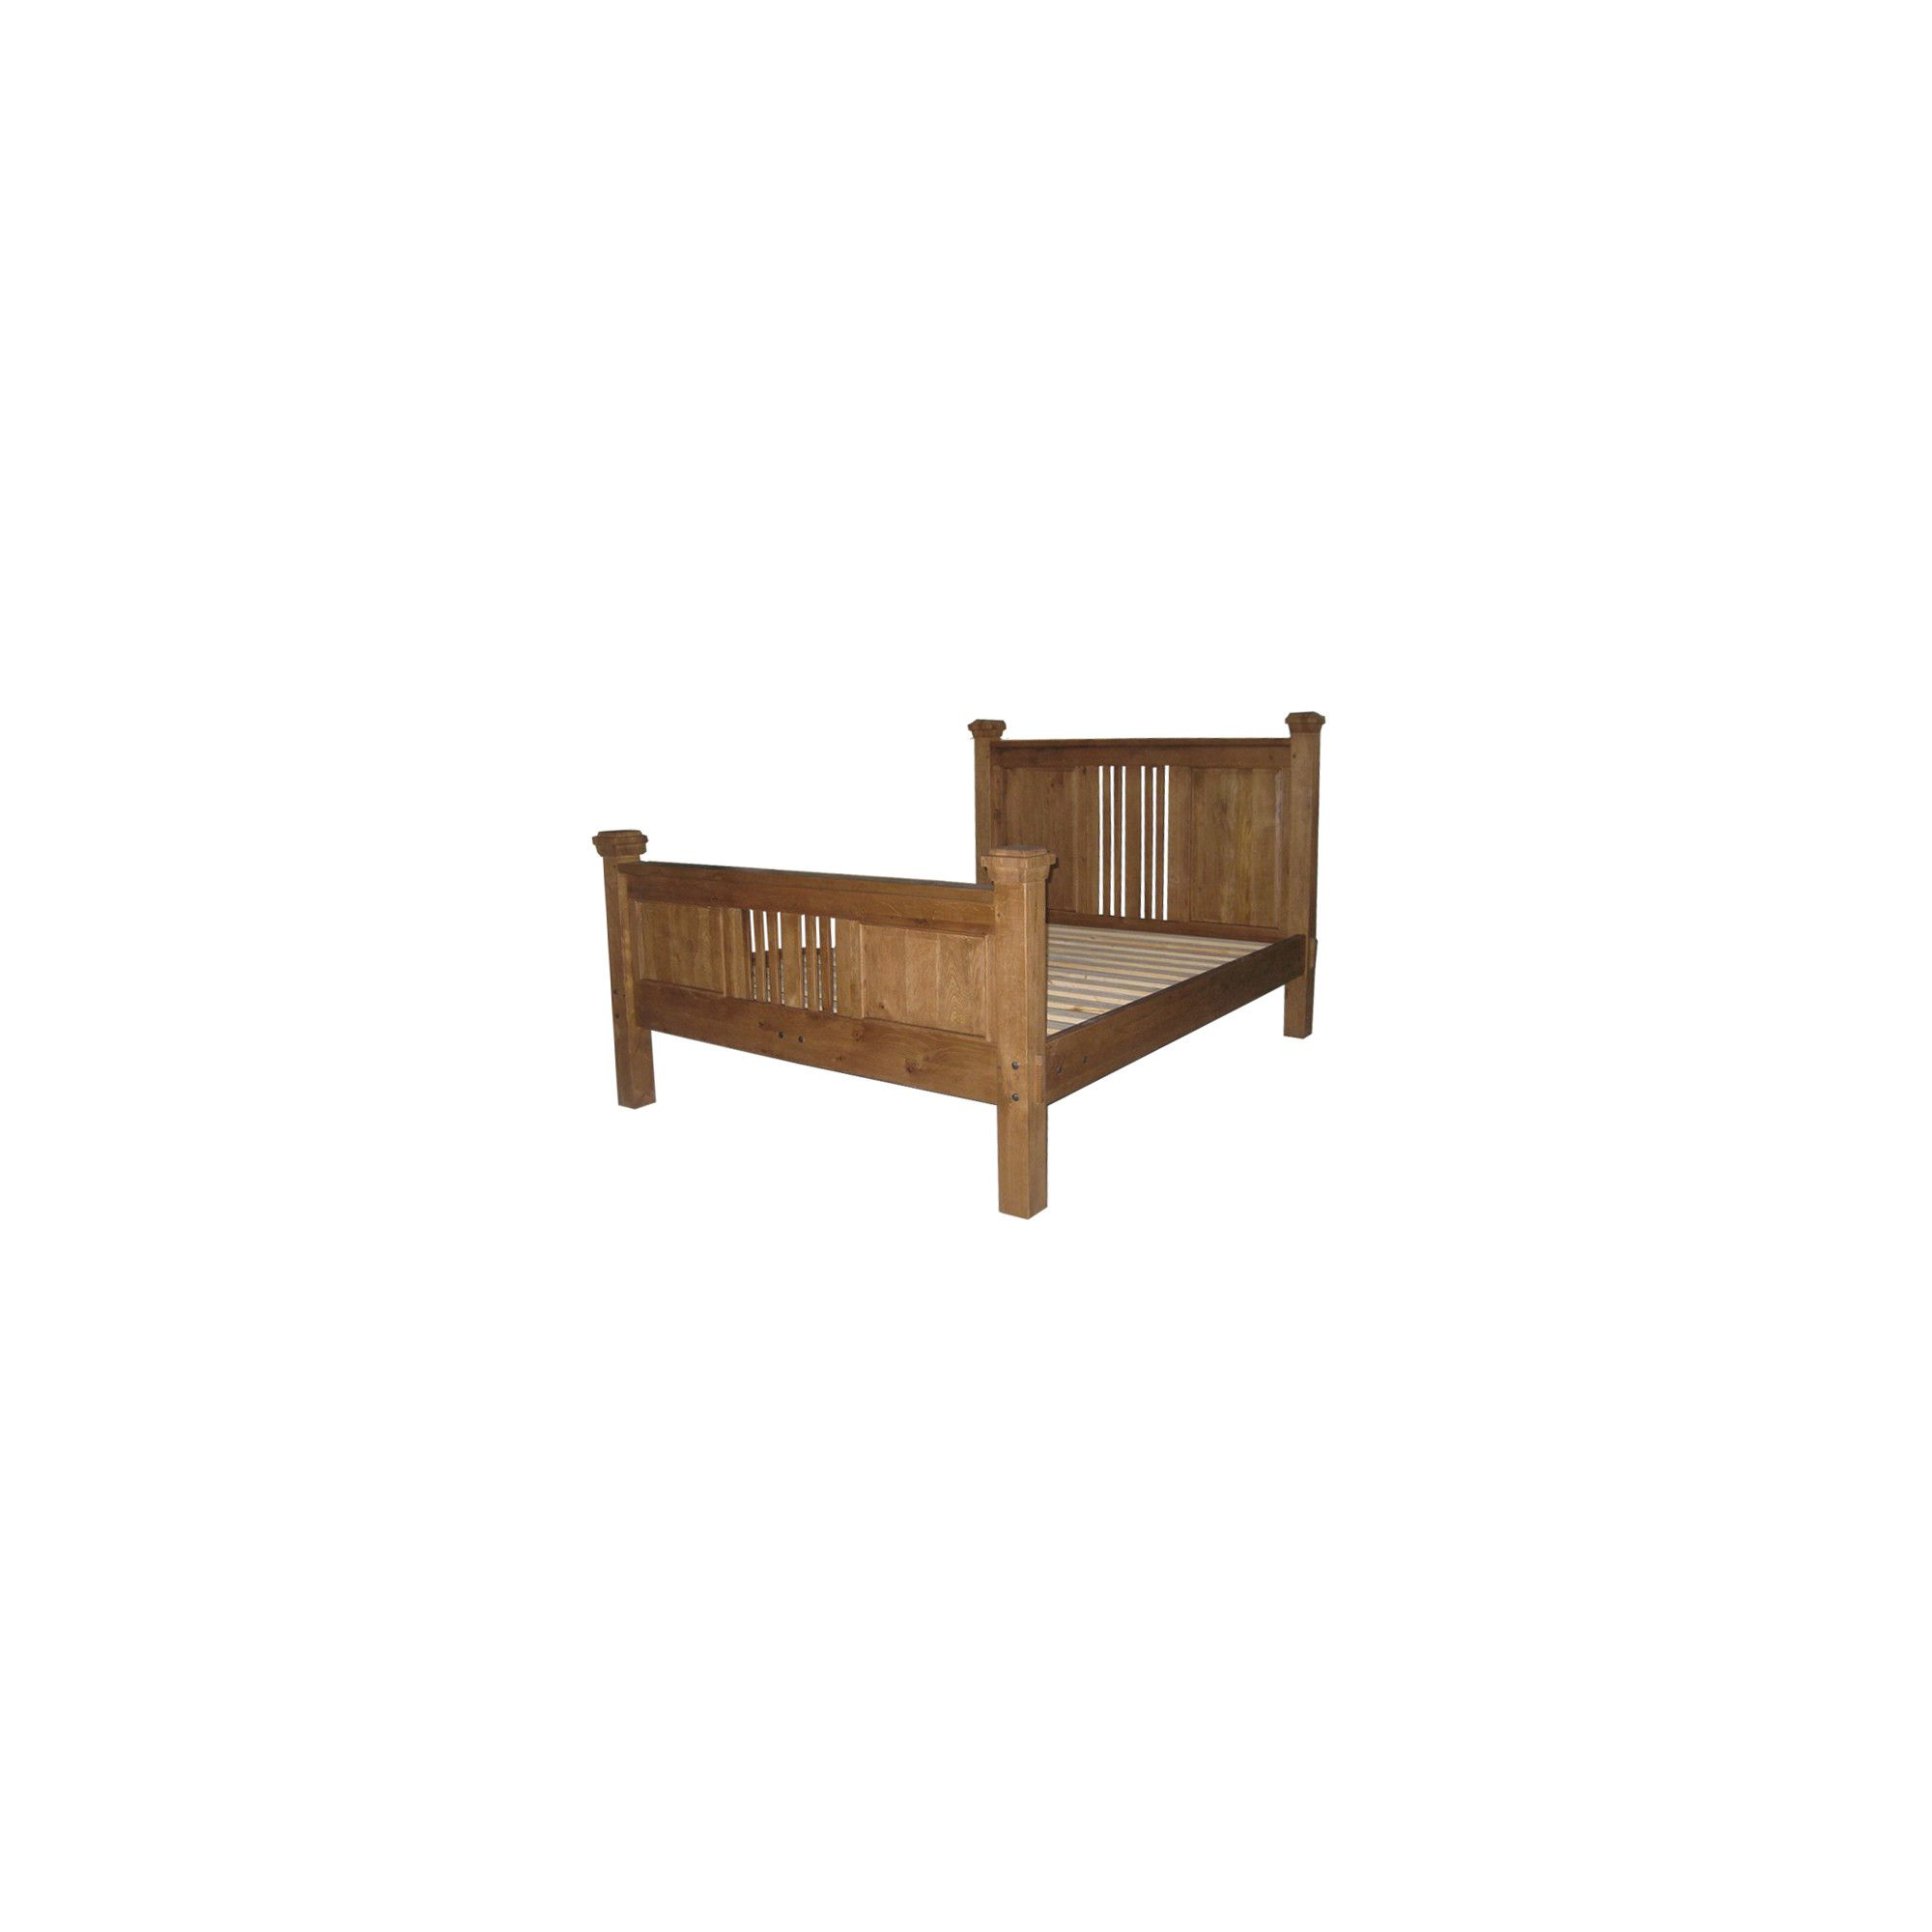 Wiseaction Riviera Bed Frame - King at Tesco Direct